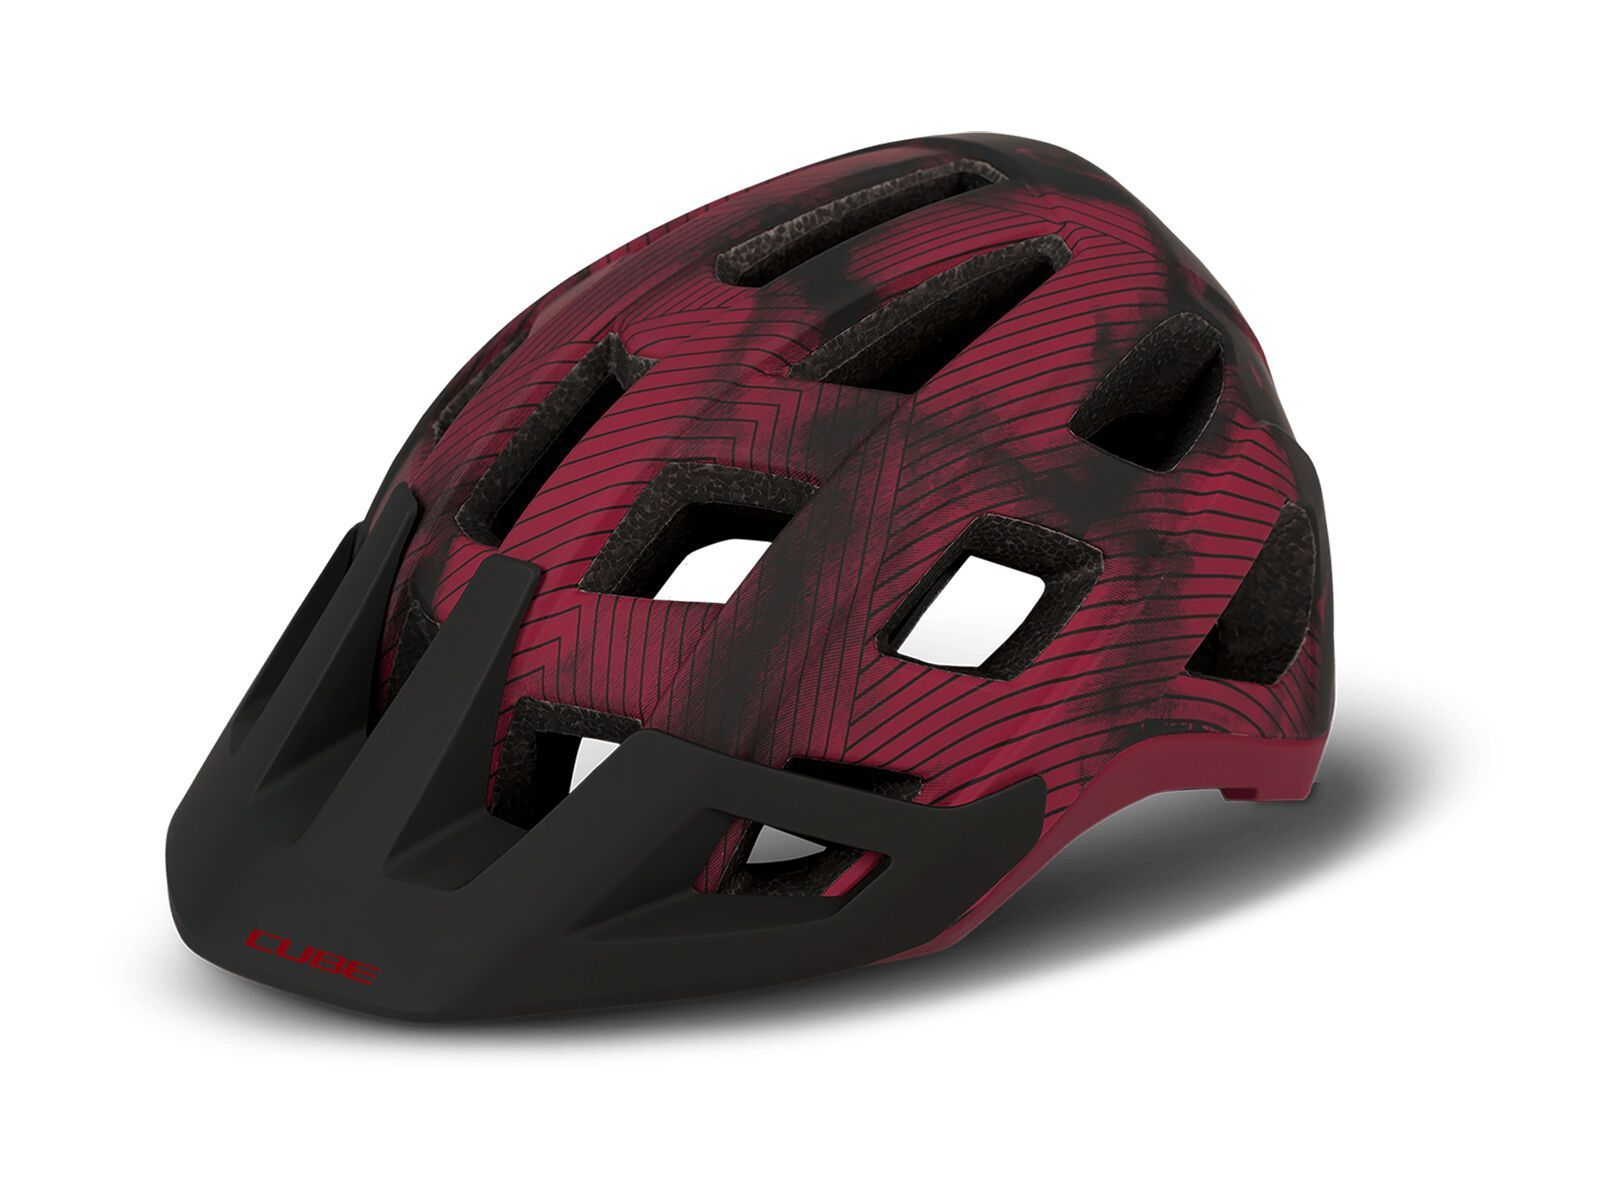 Cube Helm Badger red S // 52-56 cm 162440286